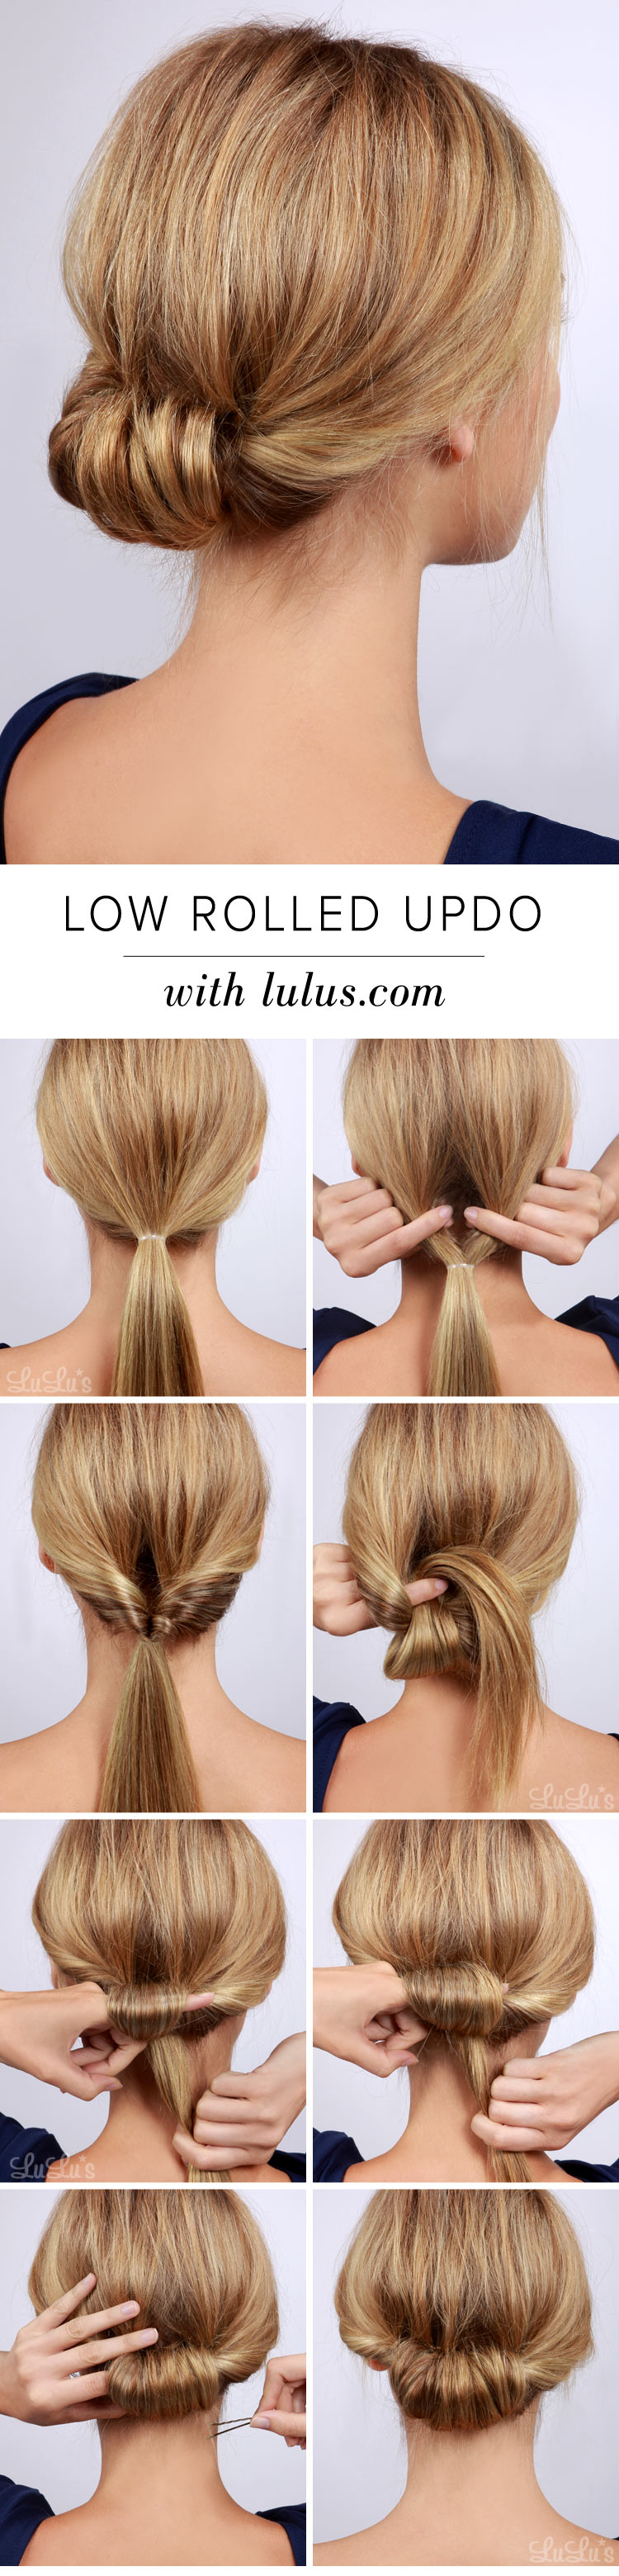 Fantastic Lulus How To Low Rolled Updo Hair Tutorial Lulus Com Fashion Blog Hairstyle Inspiration Daily Dogsangcom